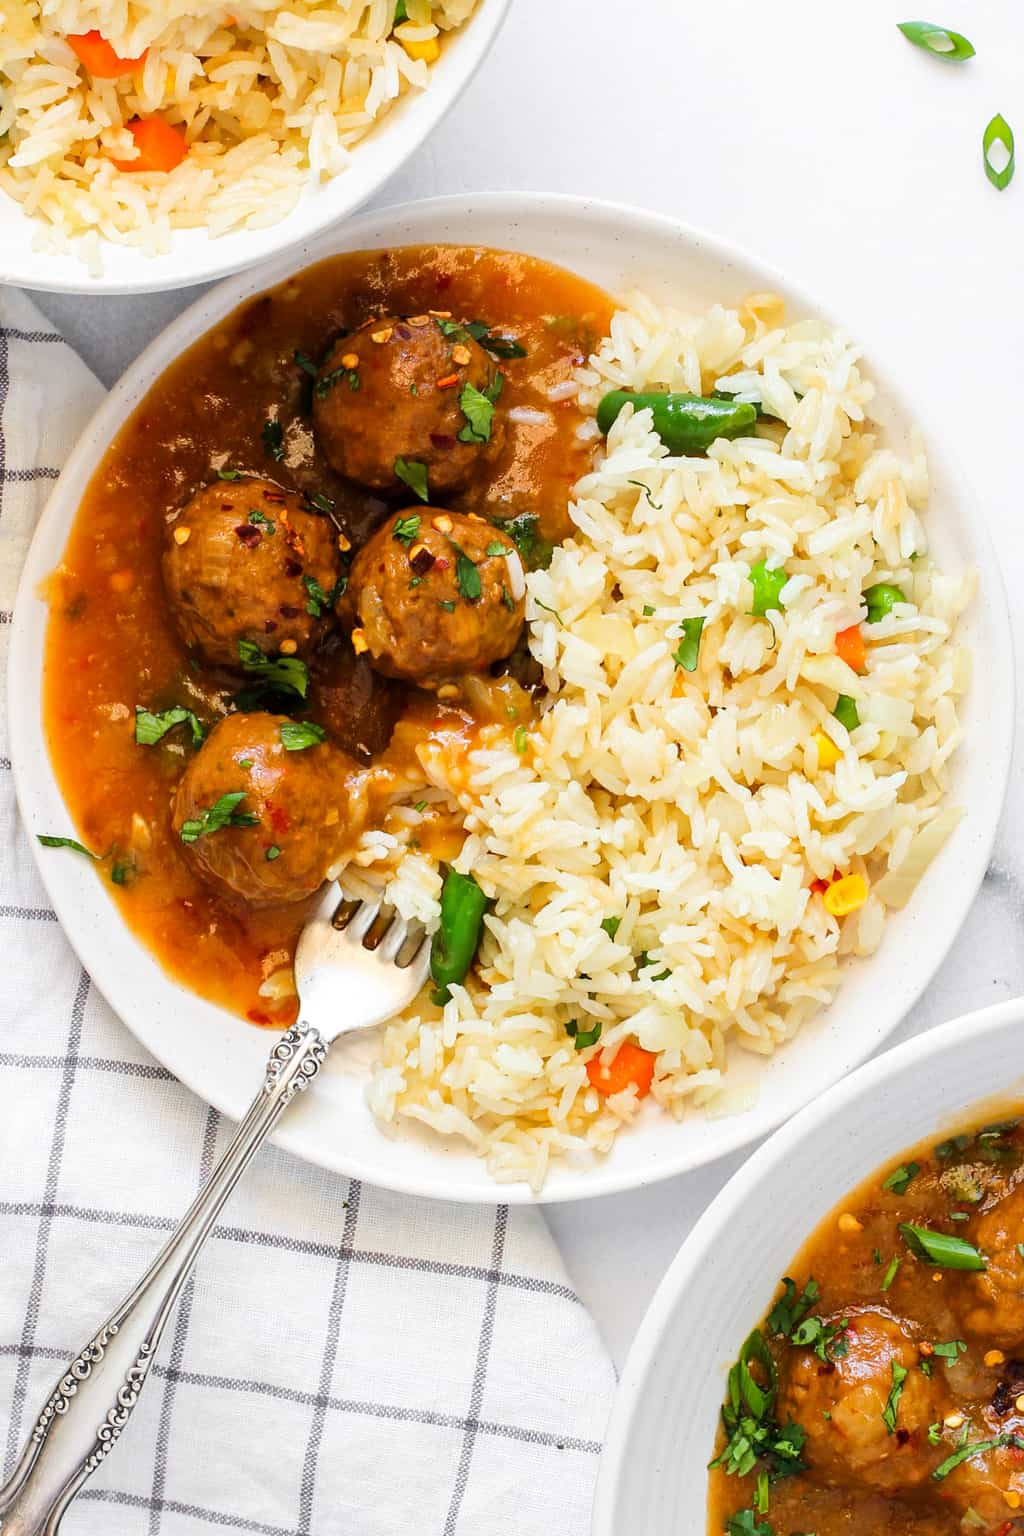 veg manchurian served with fried rice